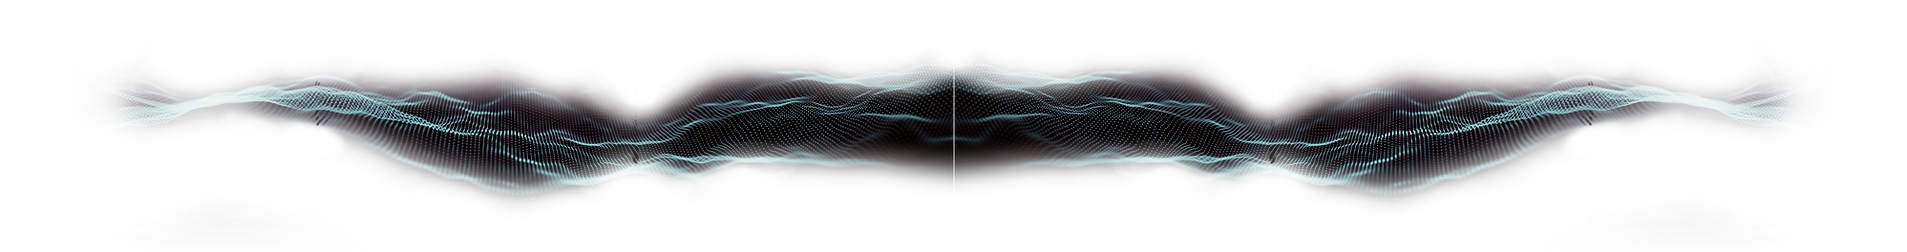 Waves_v02.png